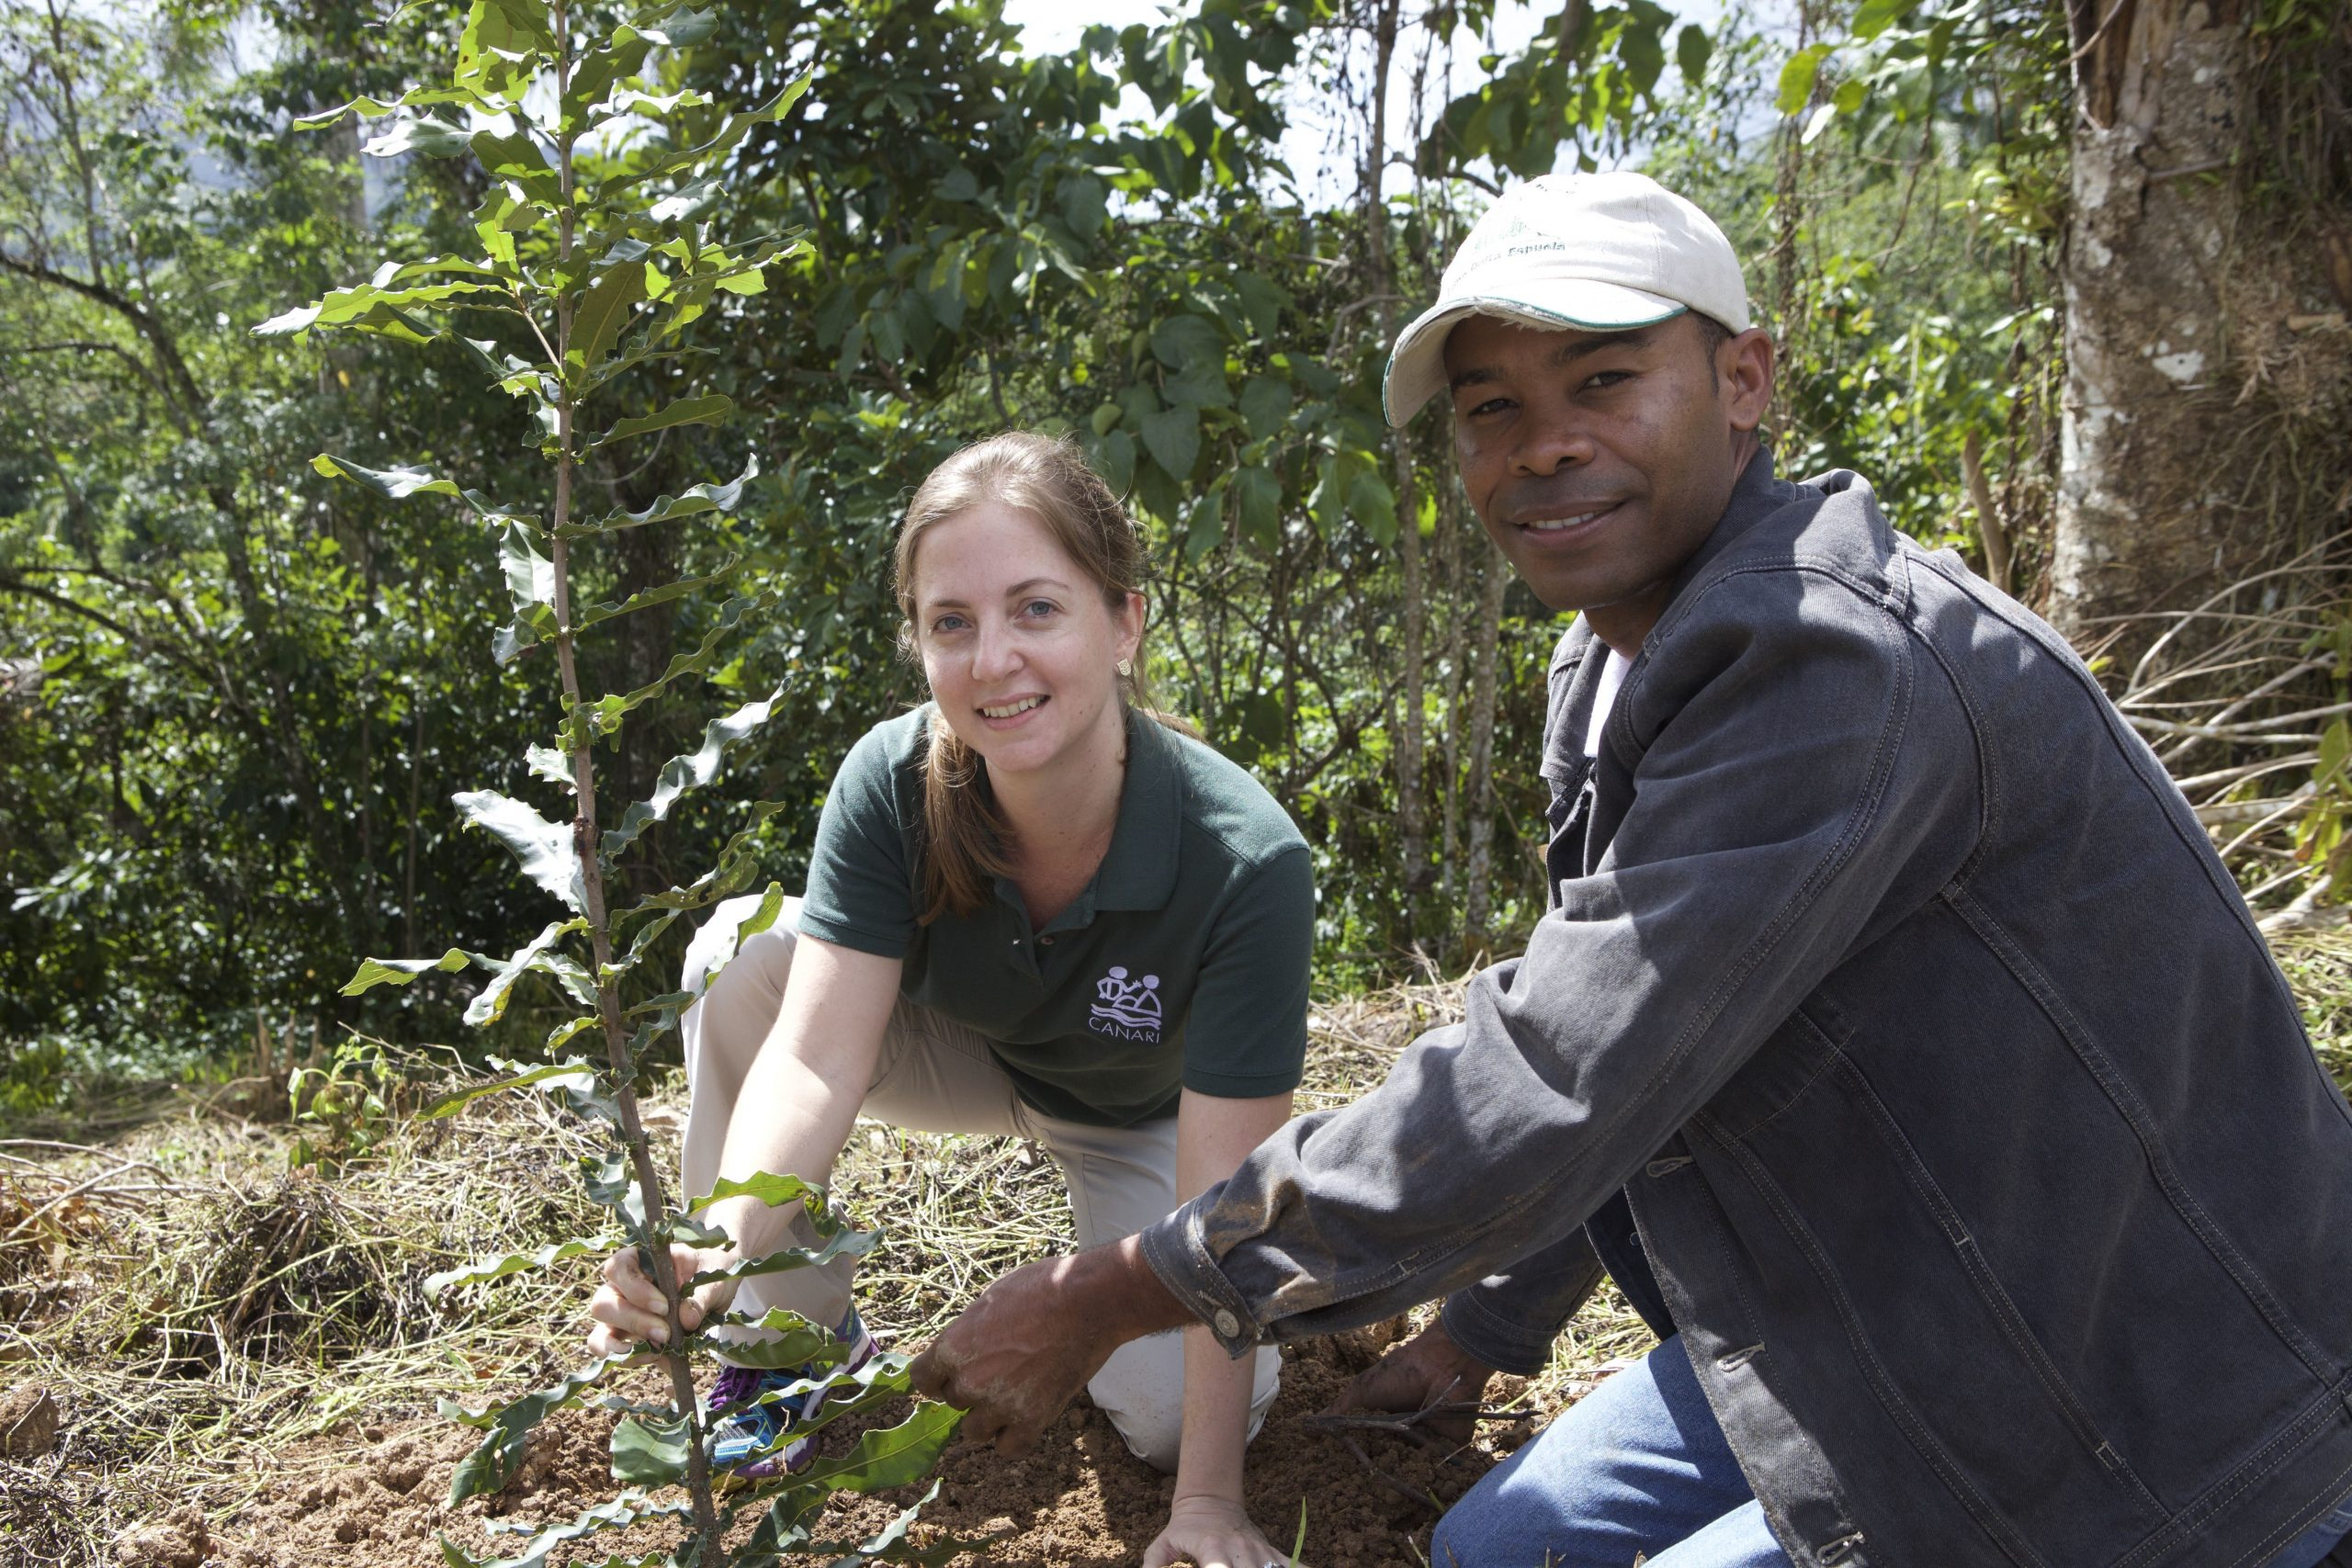 Planting native trees in the Dominican Republic. Photo credit: Olivier Langrand